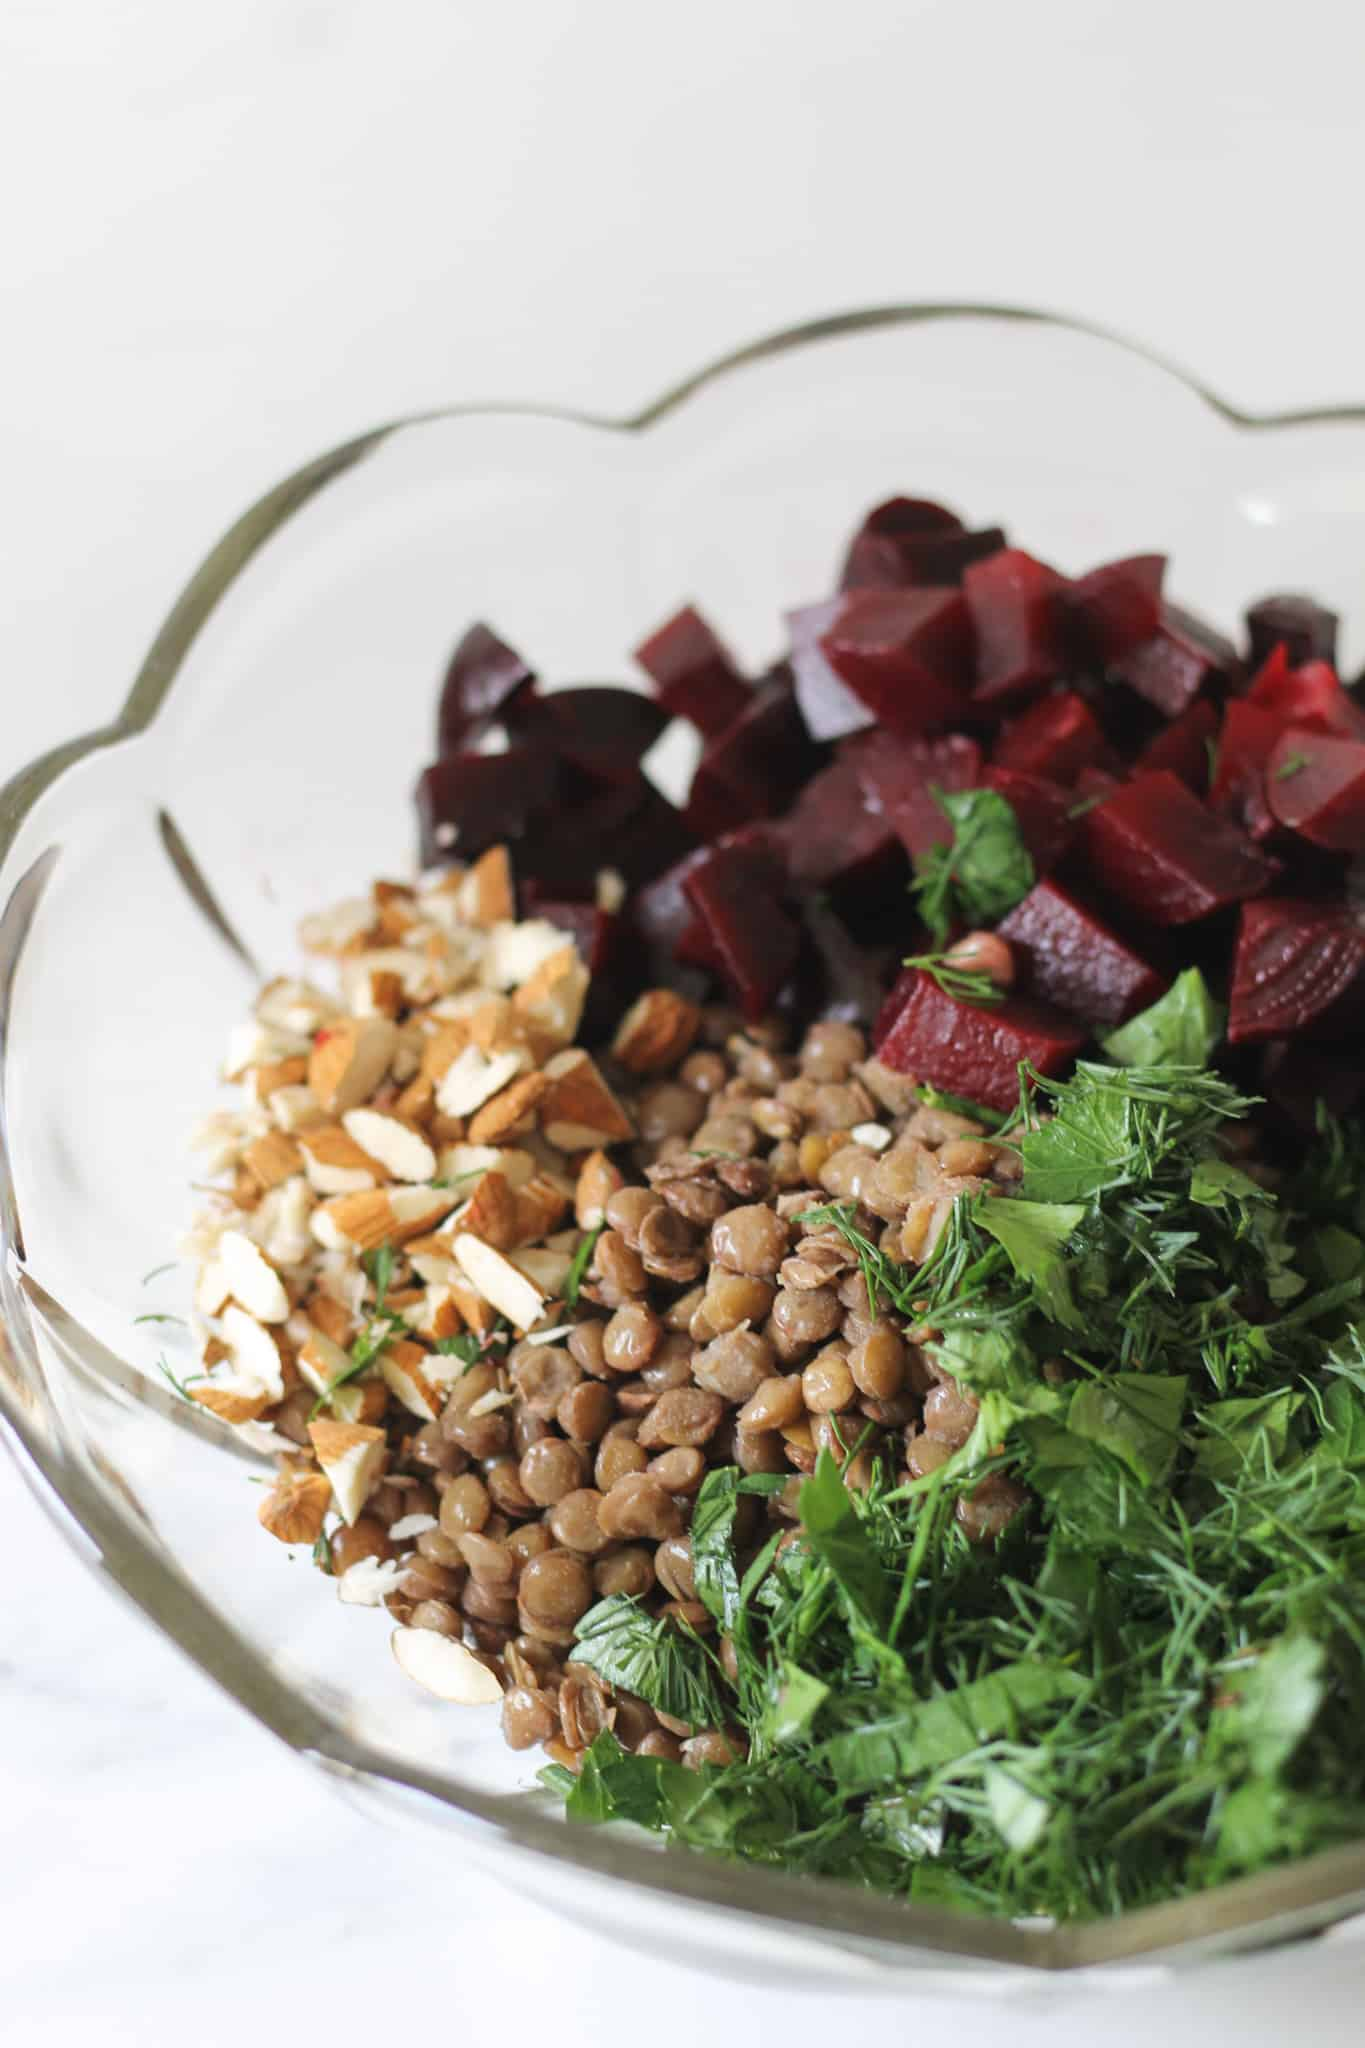 Lentil and beetroot salad ingredients in a glass bowl